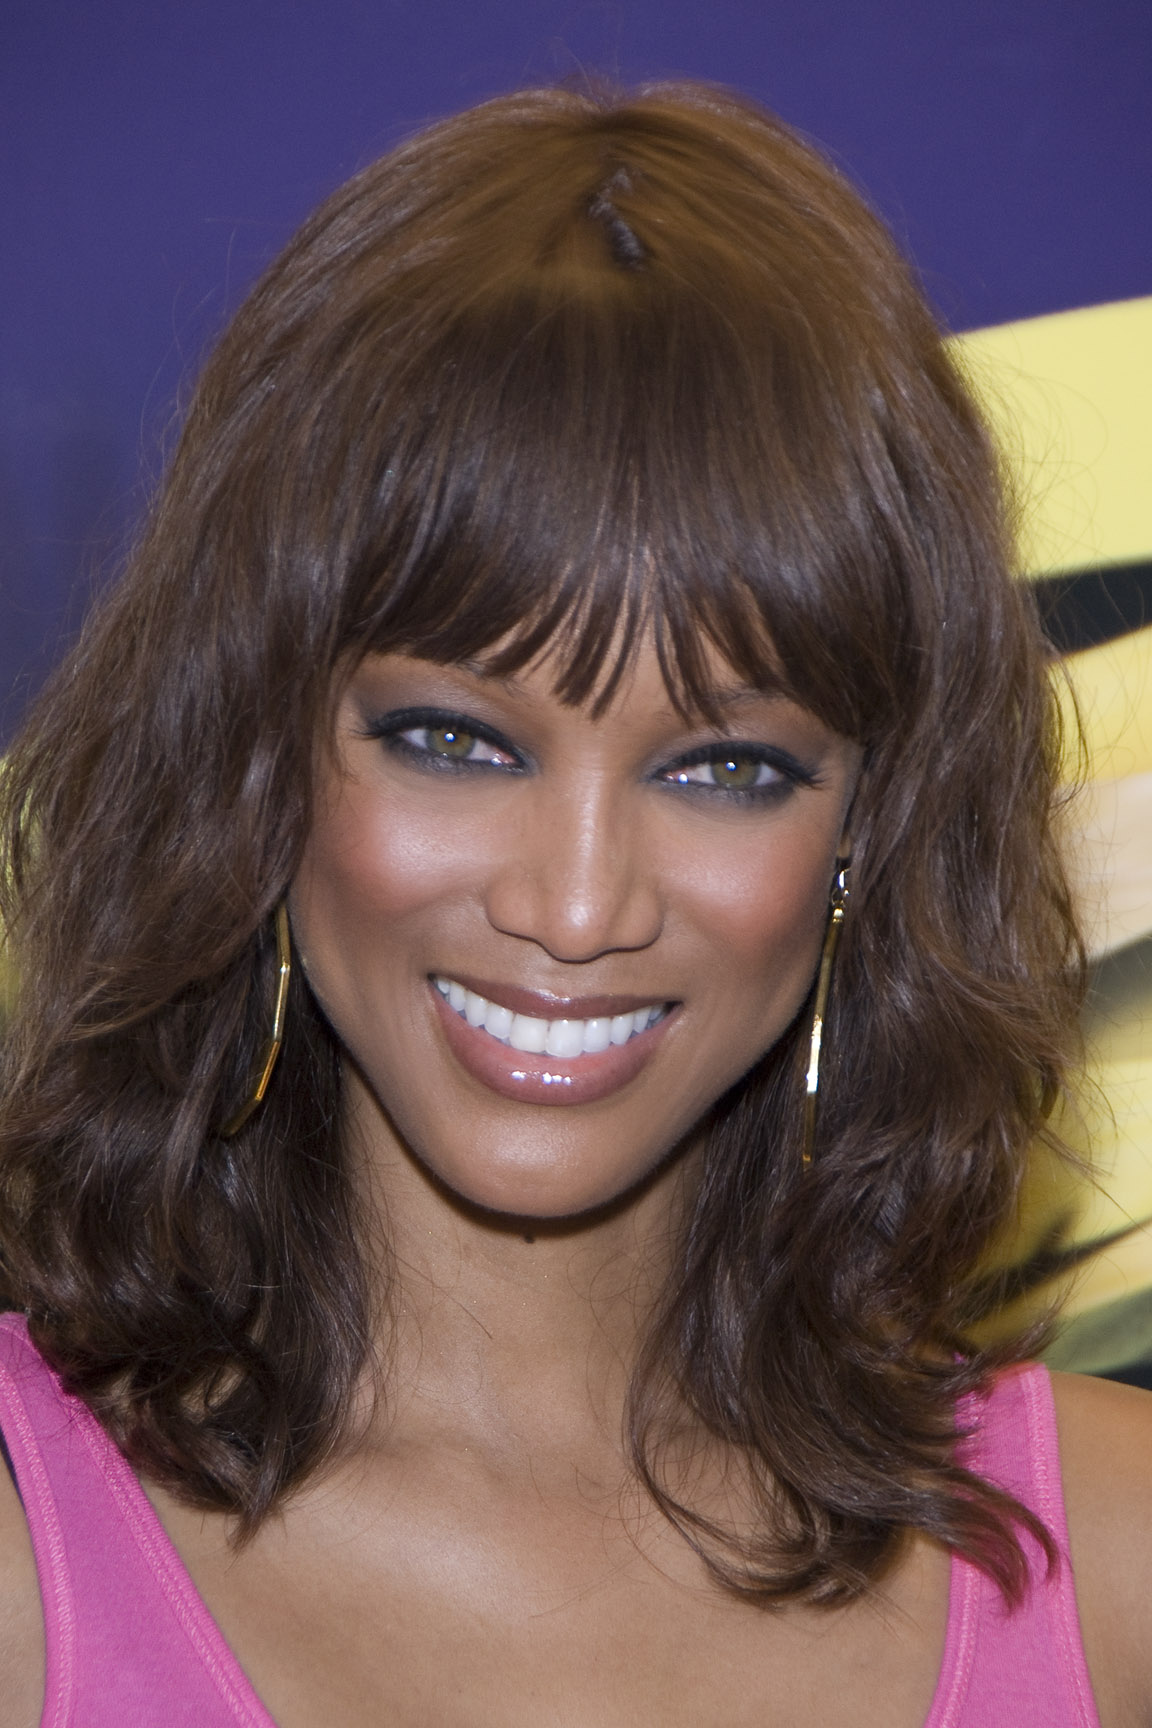 Tyra banks wikipedia music sciox Image collections